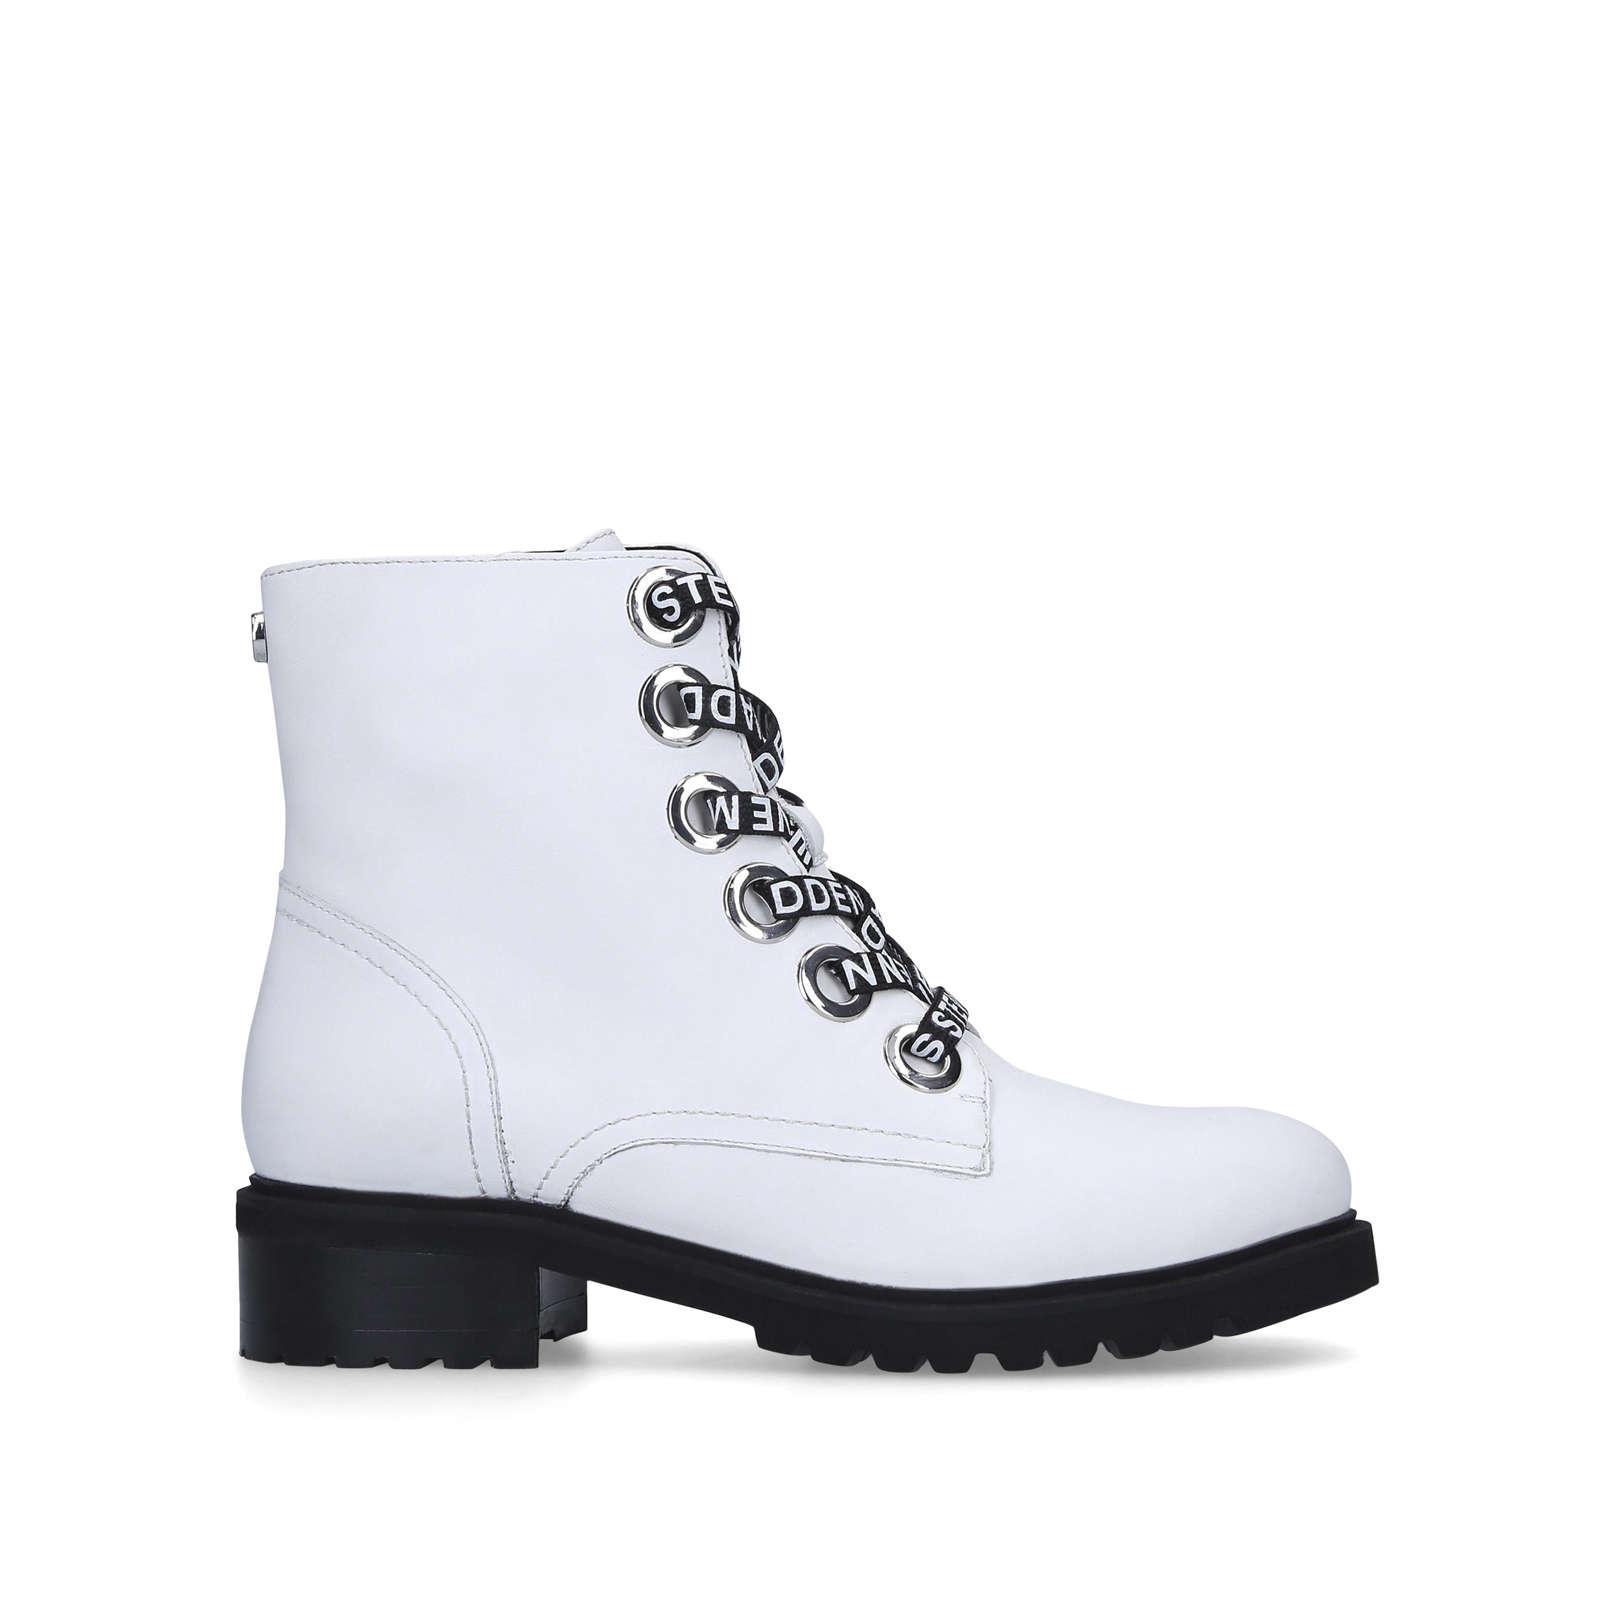 LINDIA - STEVE MADDEN Ankle Boots